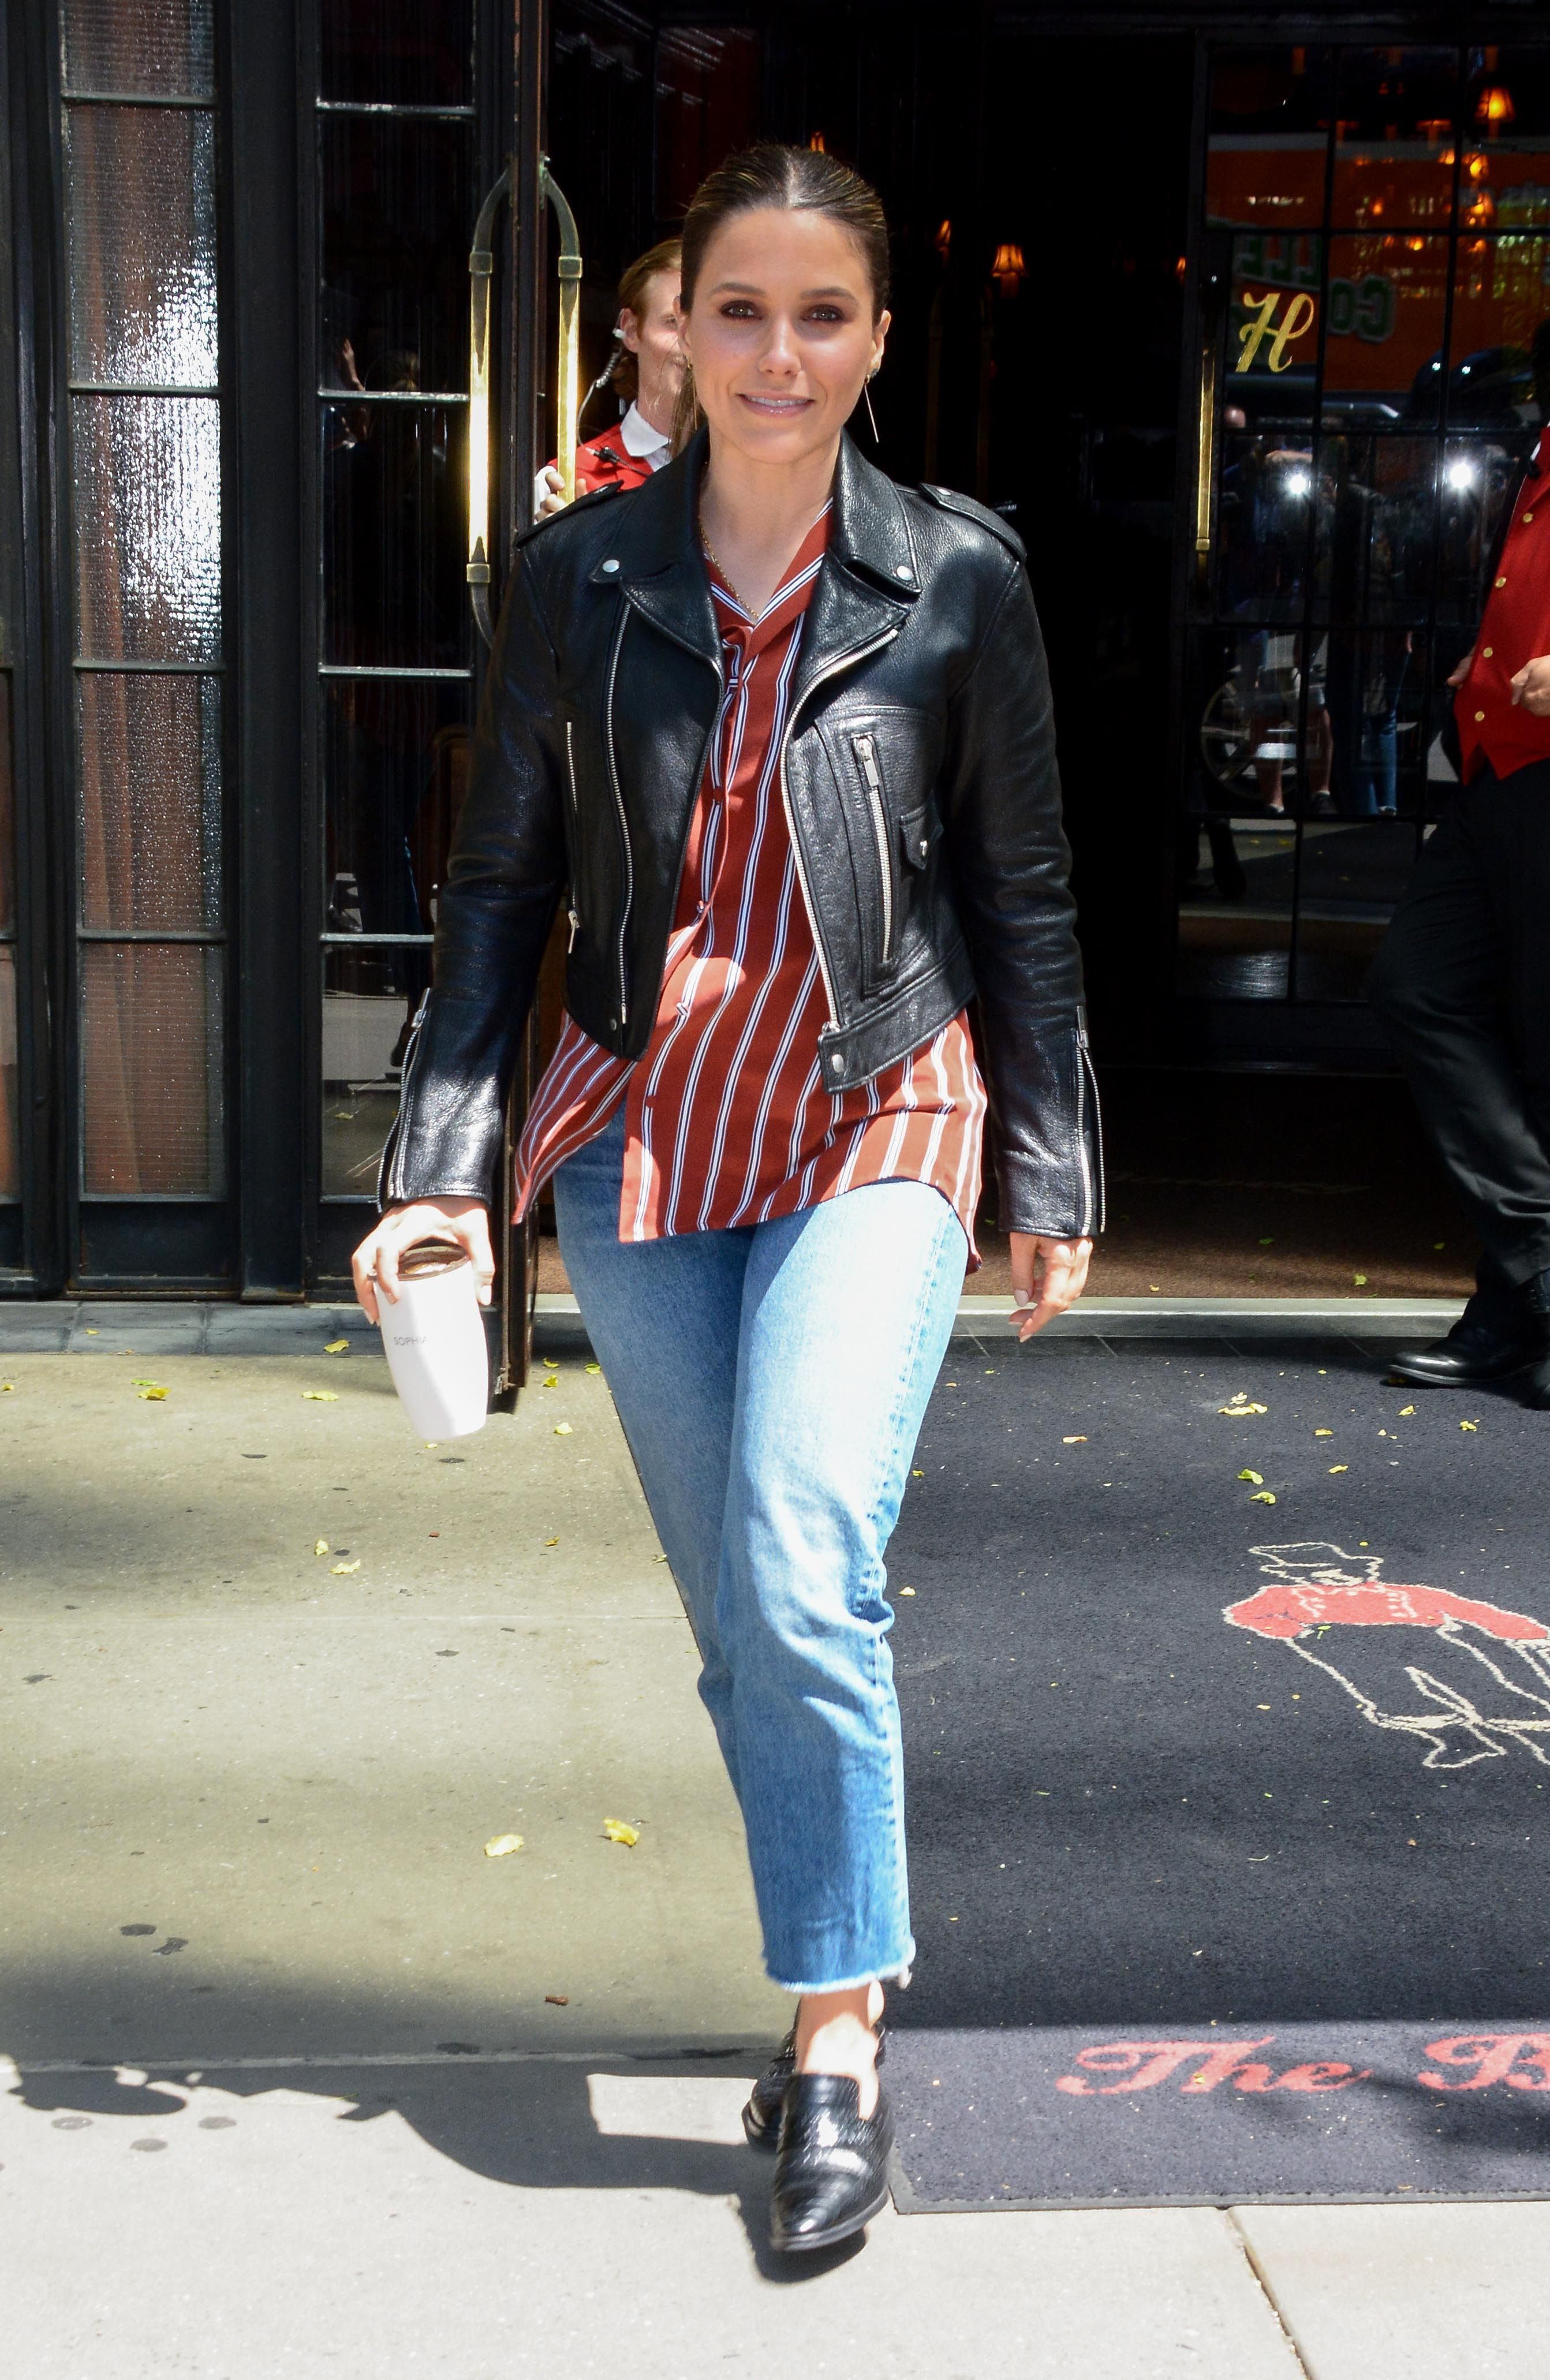 d8f96d1235 39 Chic Memorial Day Weekend Outfit Ideas From Your Fave Celebrities